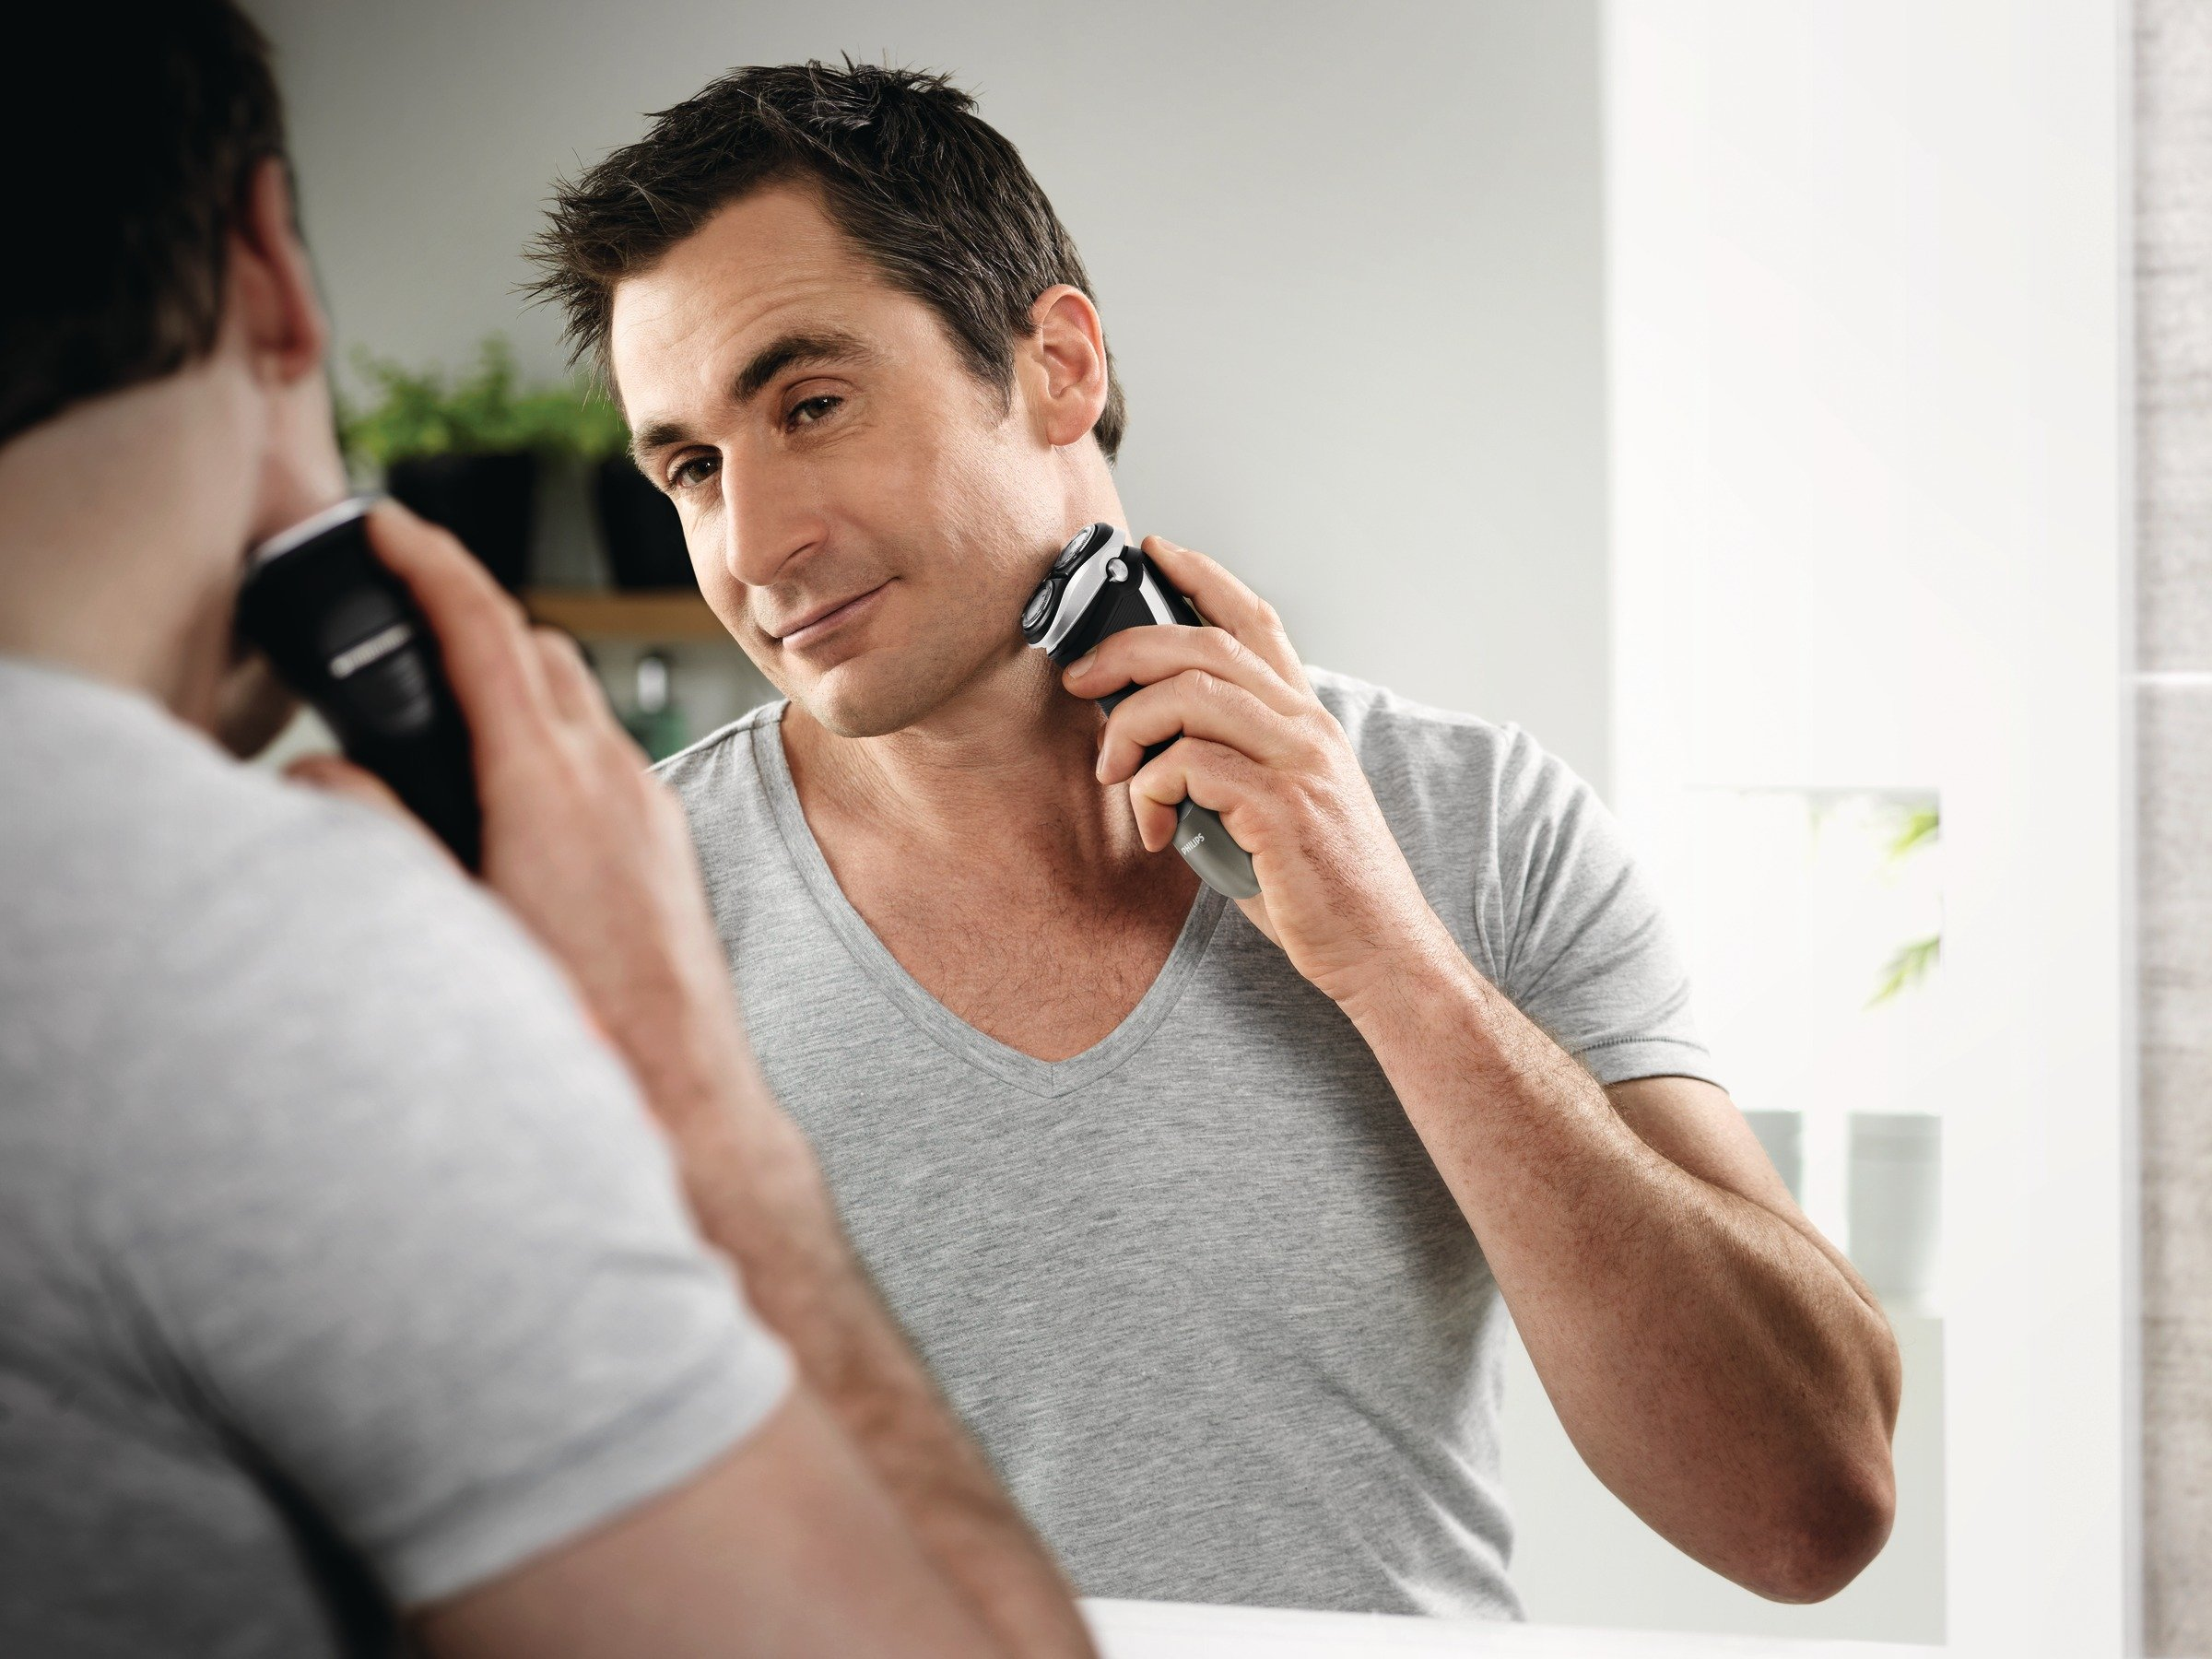 Philips PT870 Series 5000 PowerTouch Dual Precision Rechargeable Cordless Mens Dry Electric Shaver